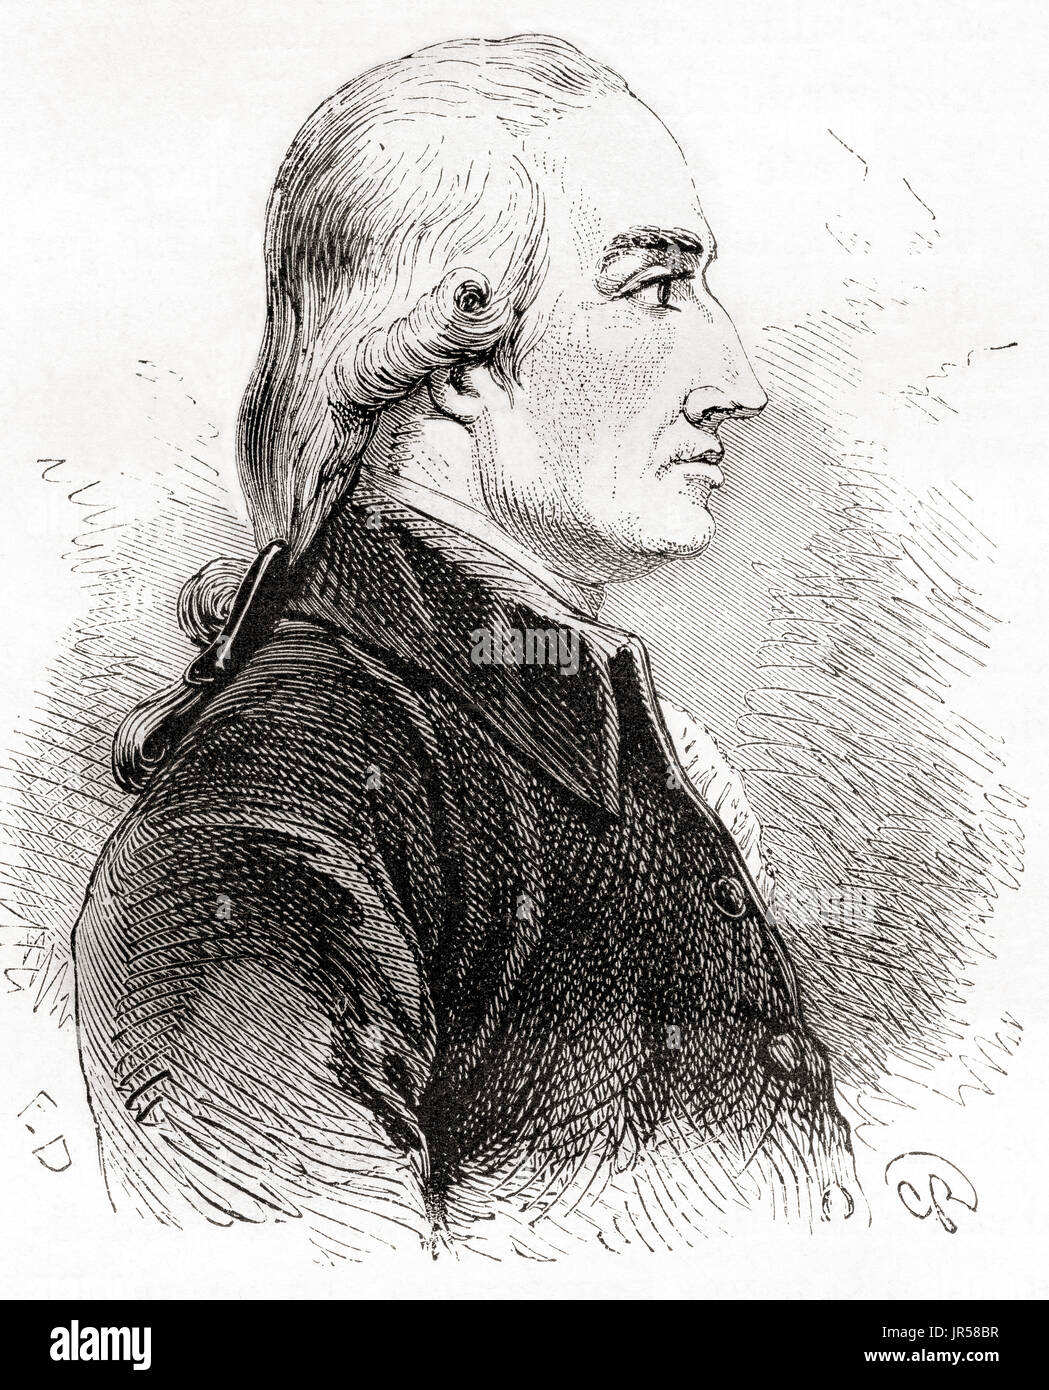 Joseph Black, 1728 – 1799.  Scottish physician and chemist, known for his discoveries of magnesium, latent heat, specific heat, and carbon dioxide.  From Les Merveilles de la Science, published 1870. - Stock Image